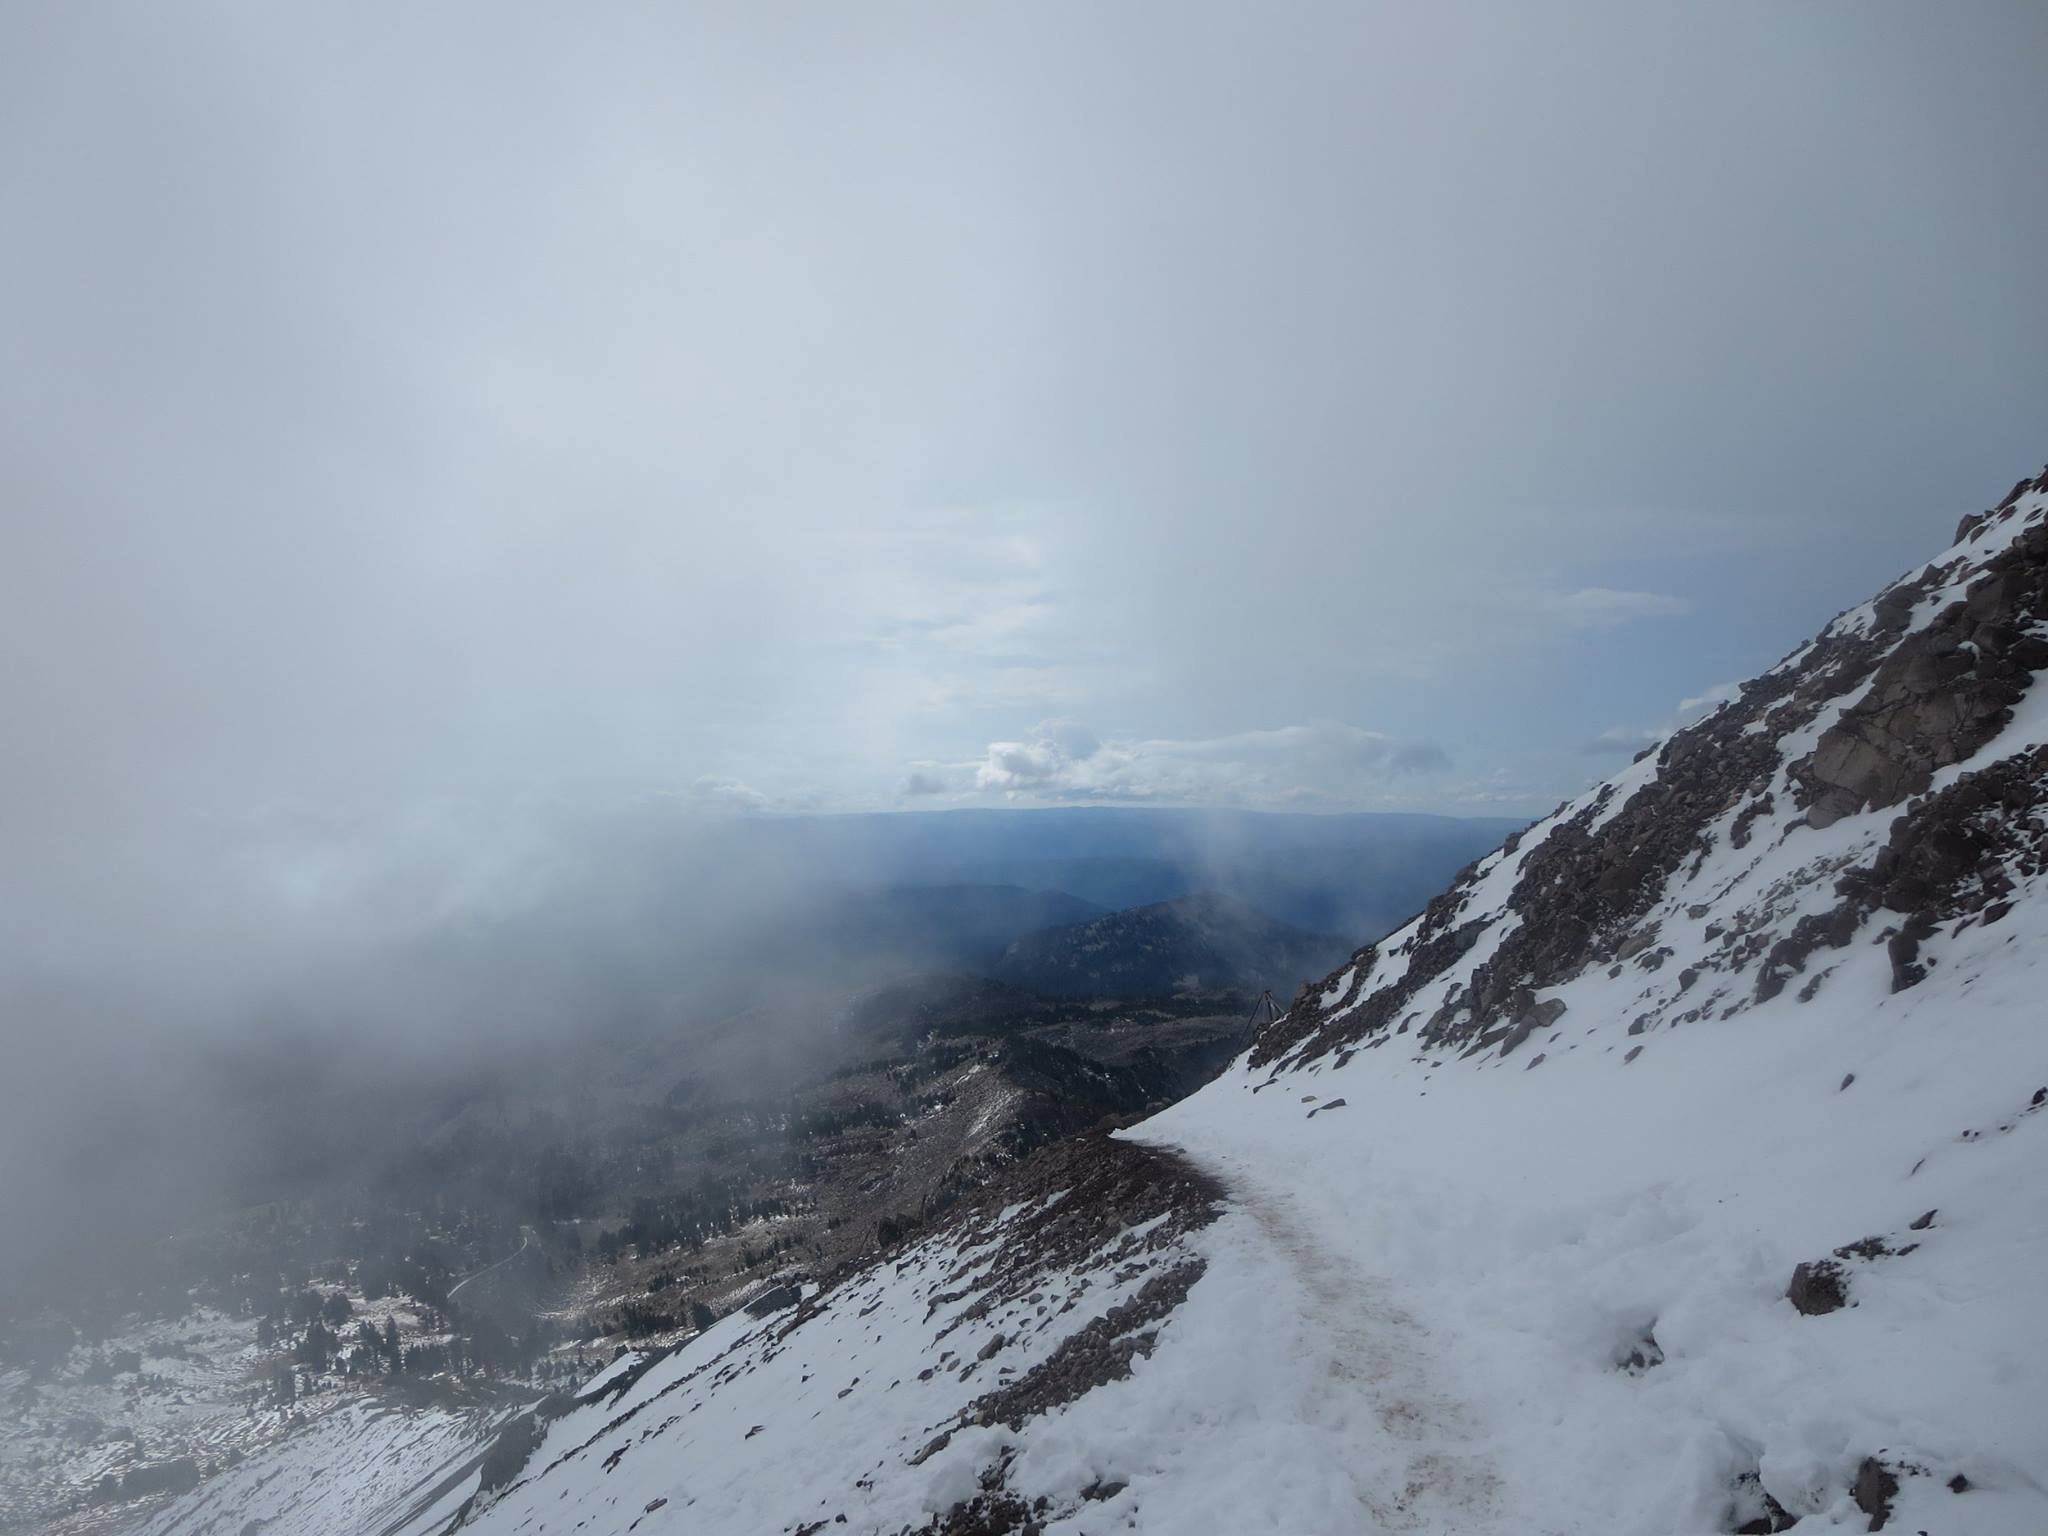 But after reaching the summit and making our way back down the trail… this happened.